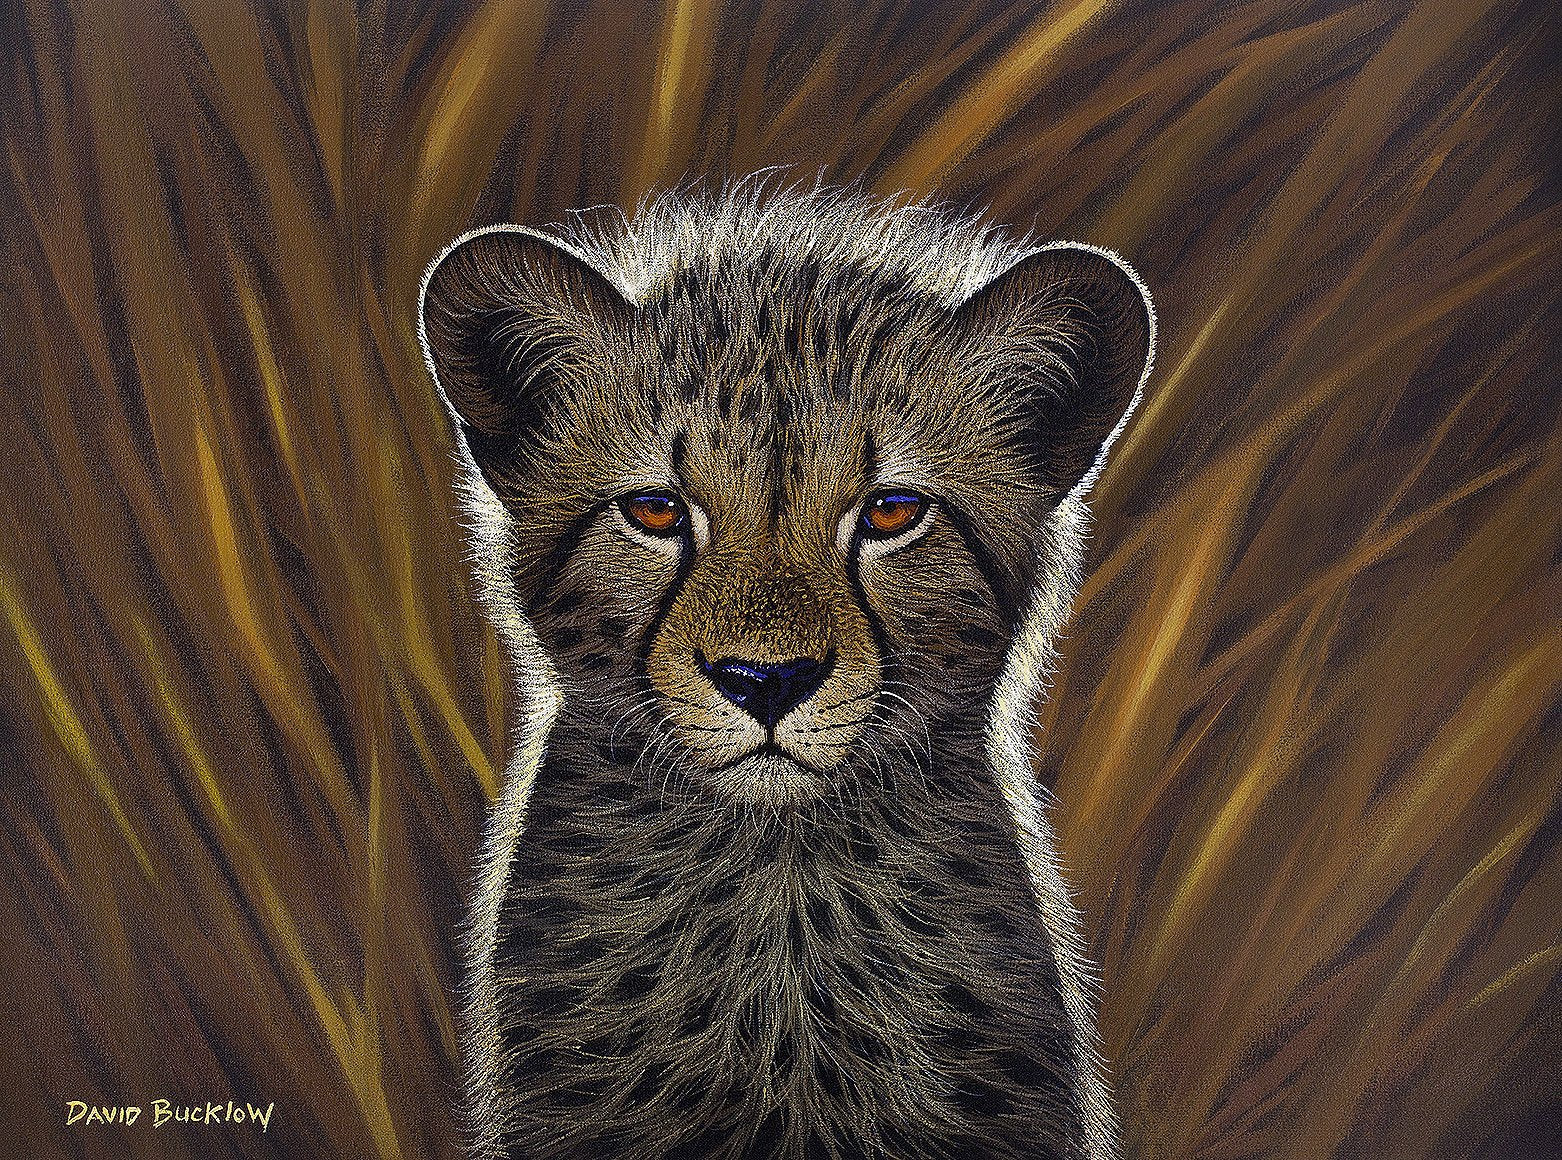 South African Limited Editions by David Bucklow - Fuzzball - Cheetah Cub - Fine Art Portfolio